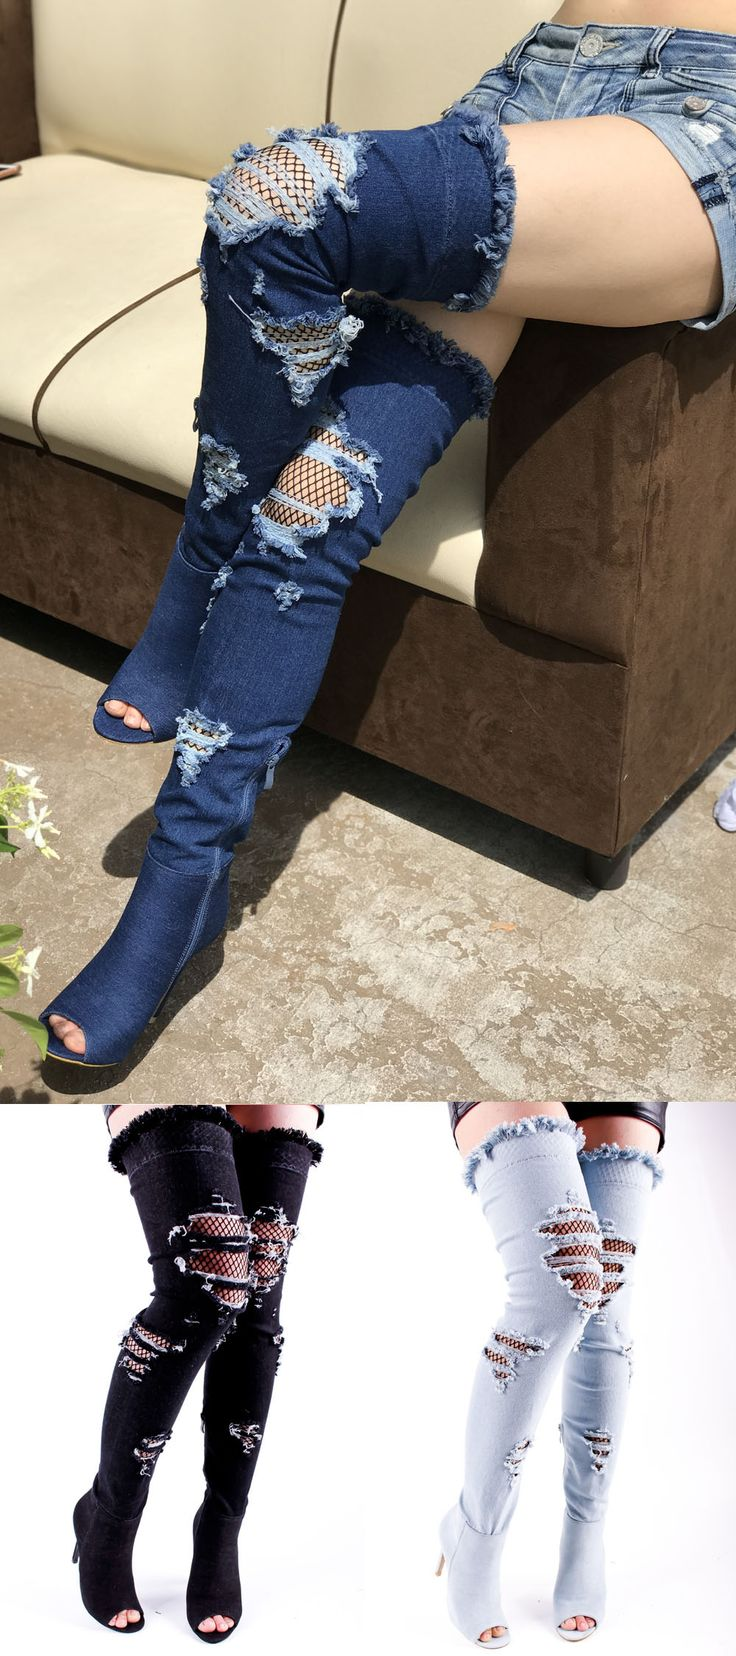 These boots shoes feature a denim cutout with fish net design, deep open toe , side zipper , over the knee stiletto high heel measures about 5 inches , boots length measure about 28 inches.